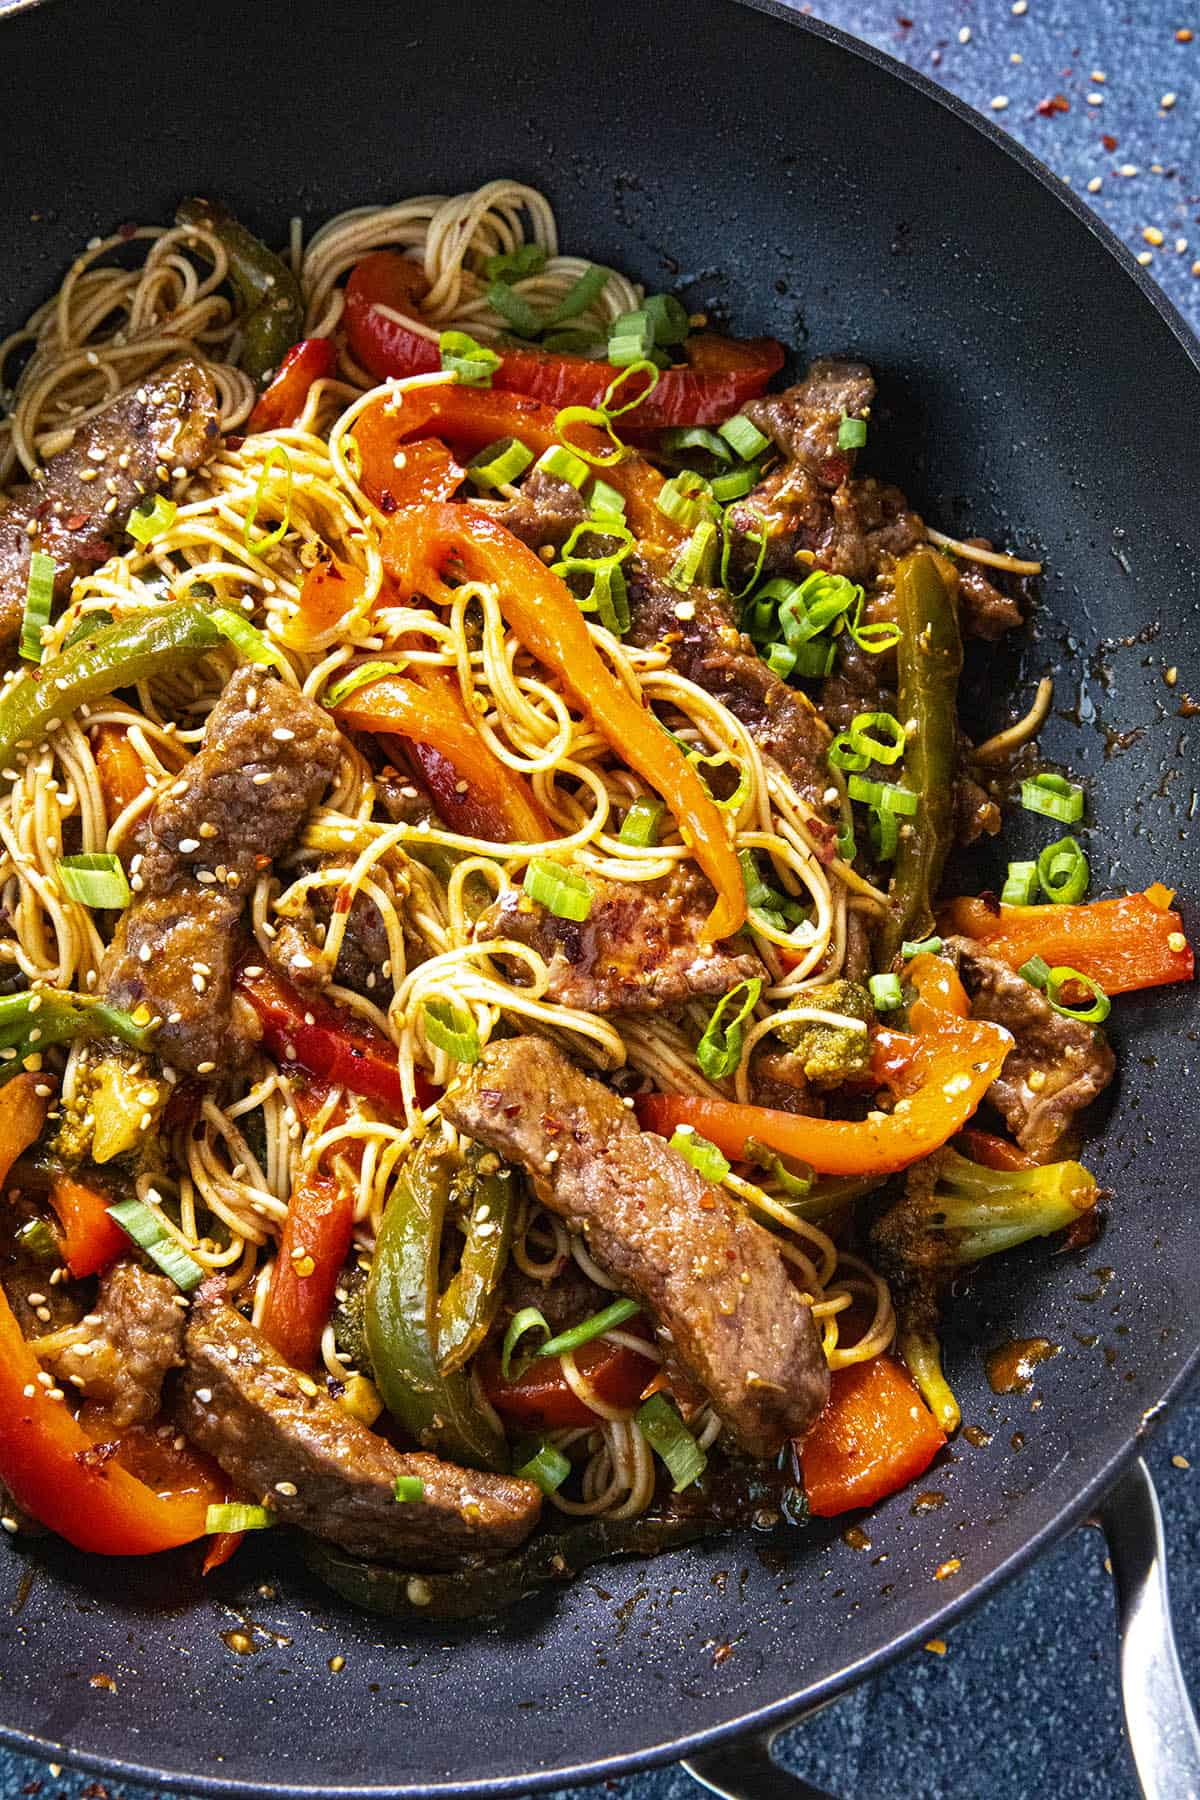 Beef Stir Fry with noodles in a pan